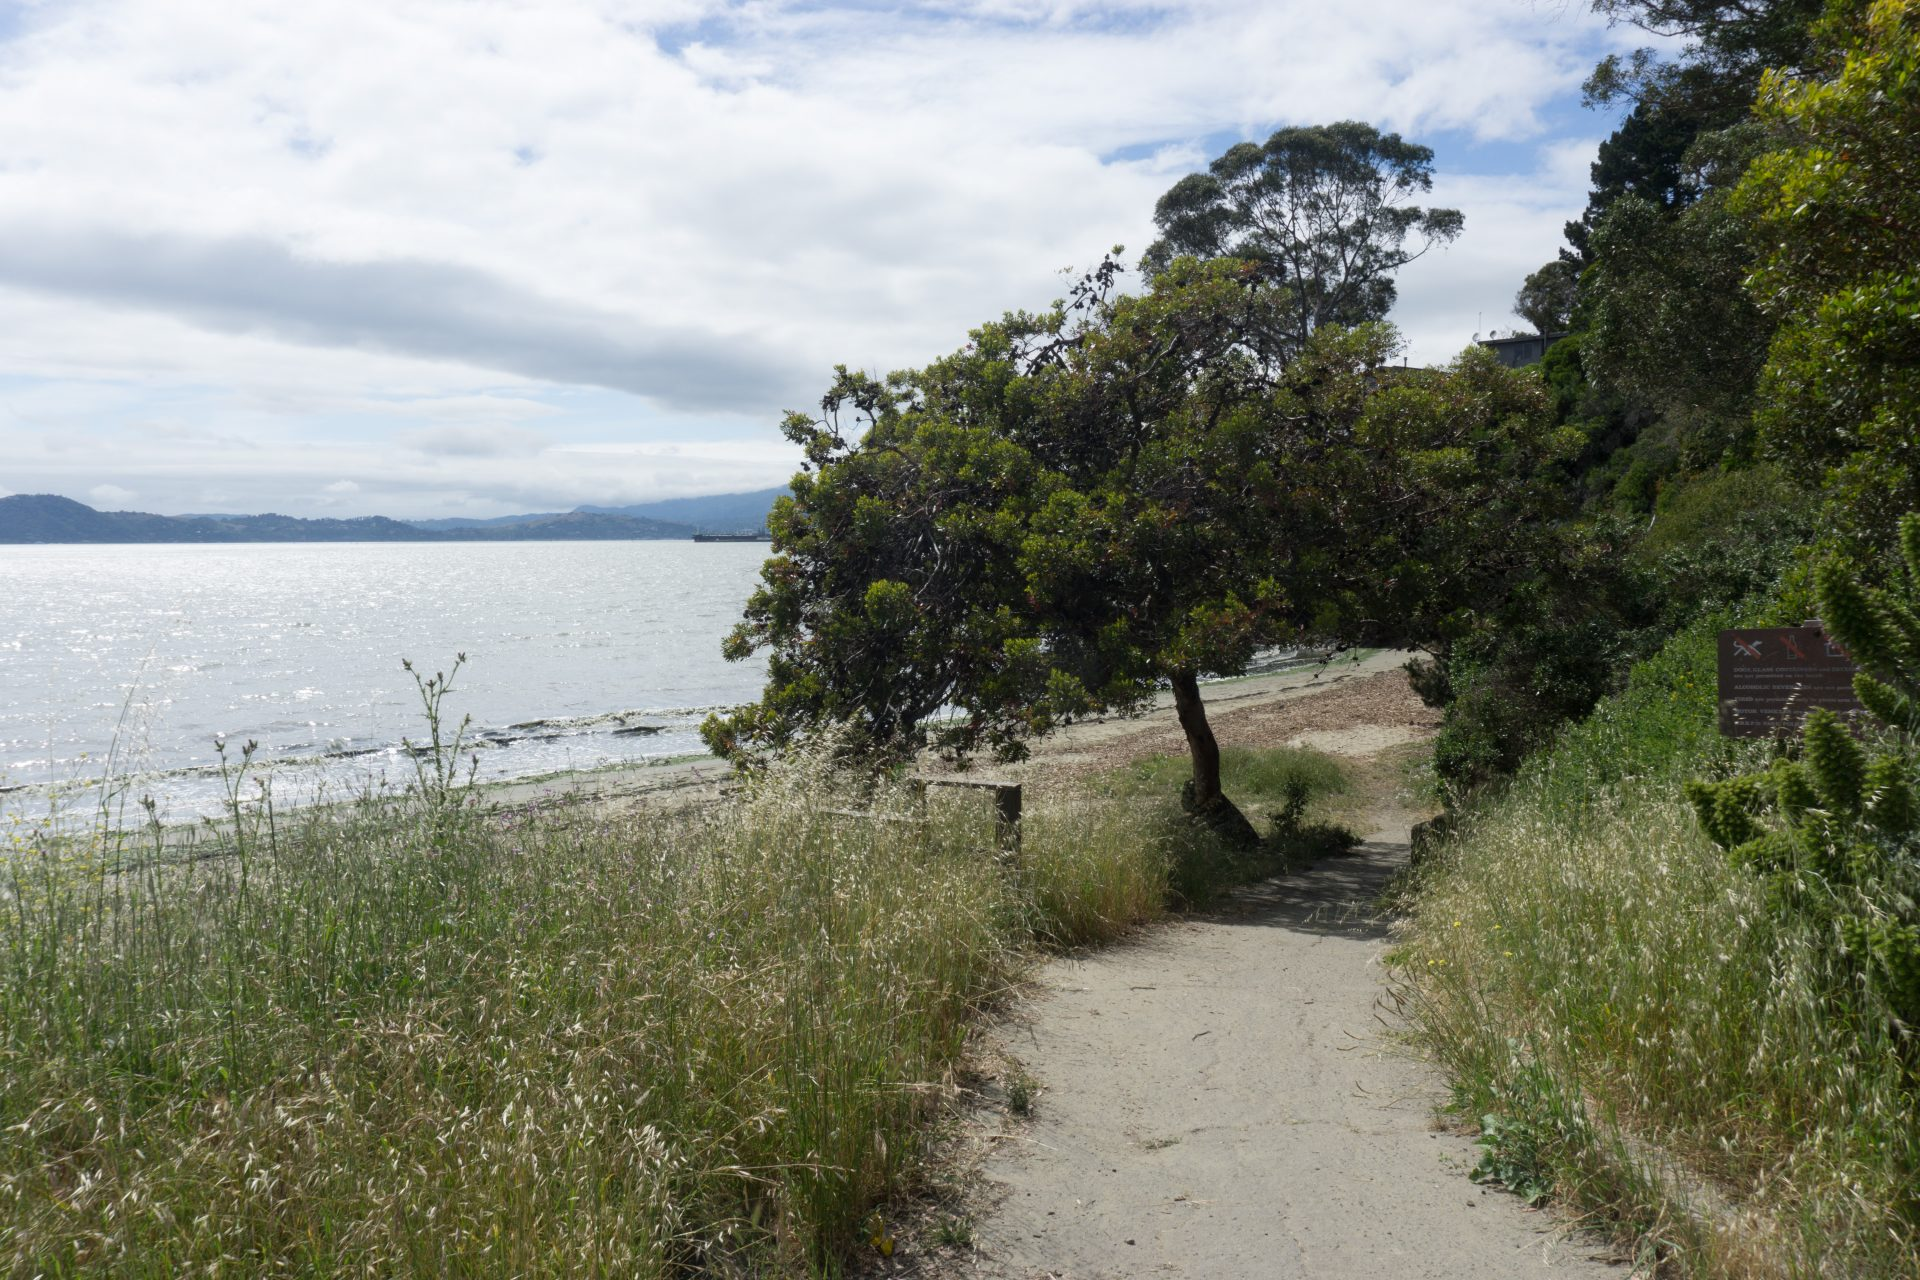 paved path down to beach with tall grasses on either side